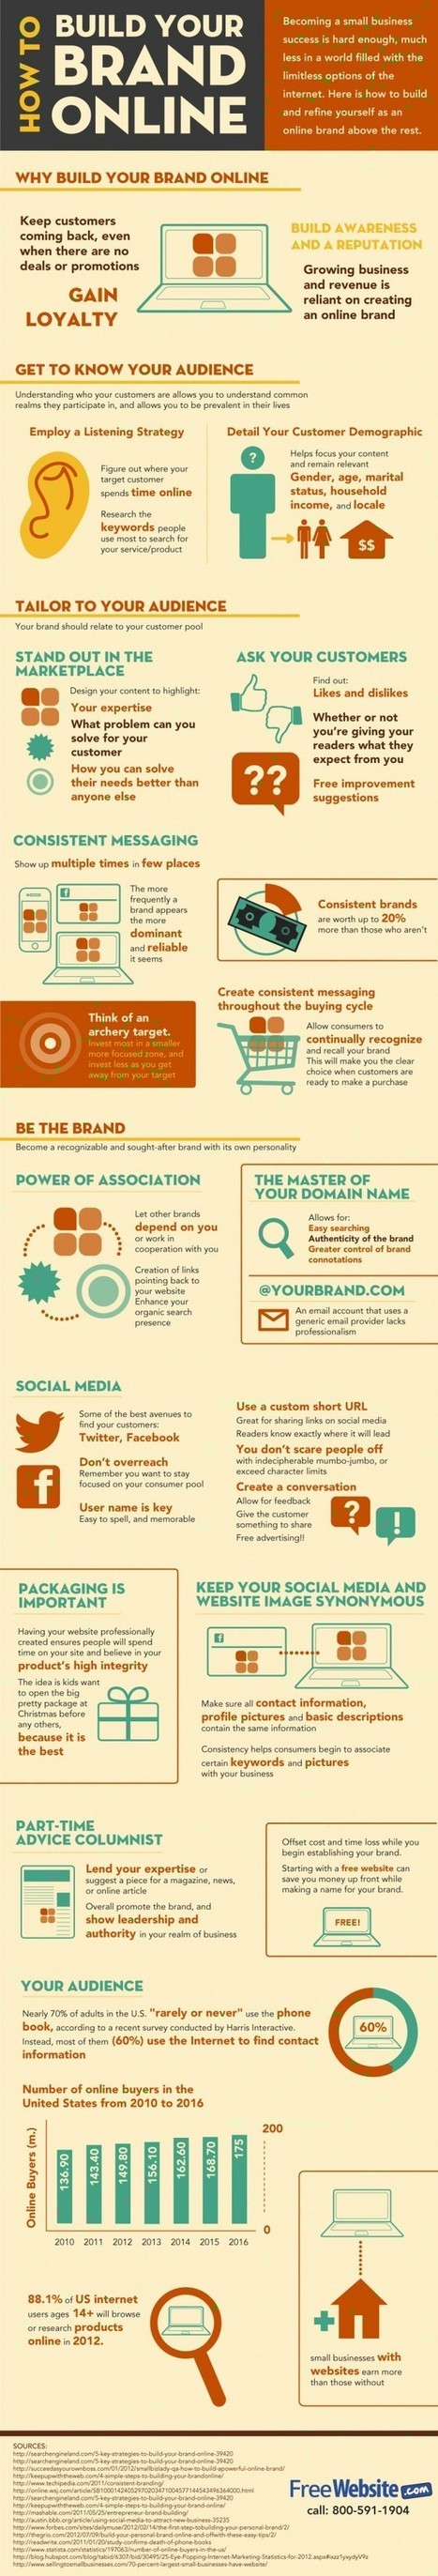 Why You Need to Build Your Brand Online [infographic] | cassyput on marketing | Scoop.it